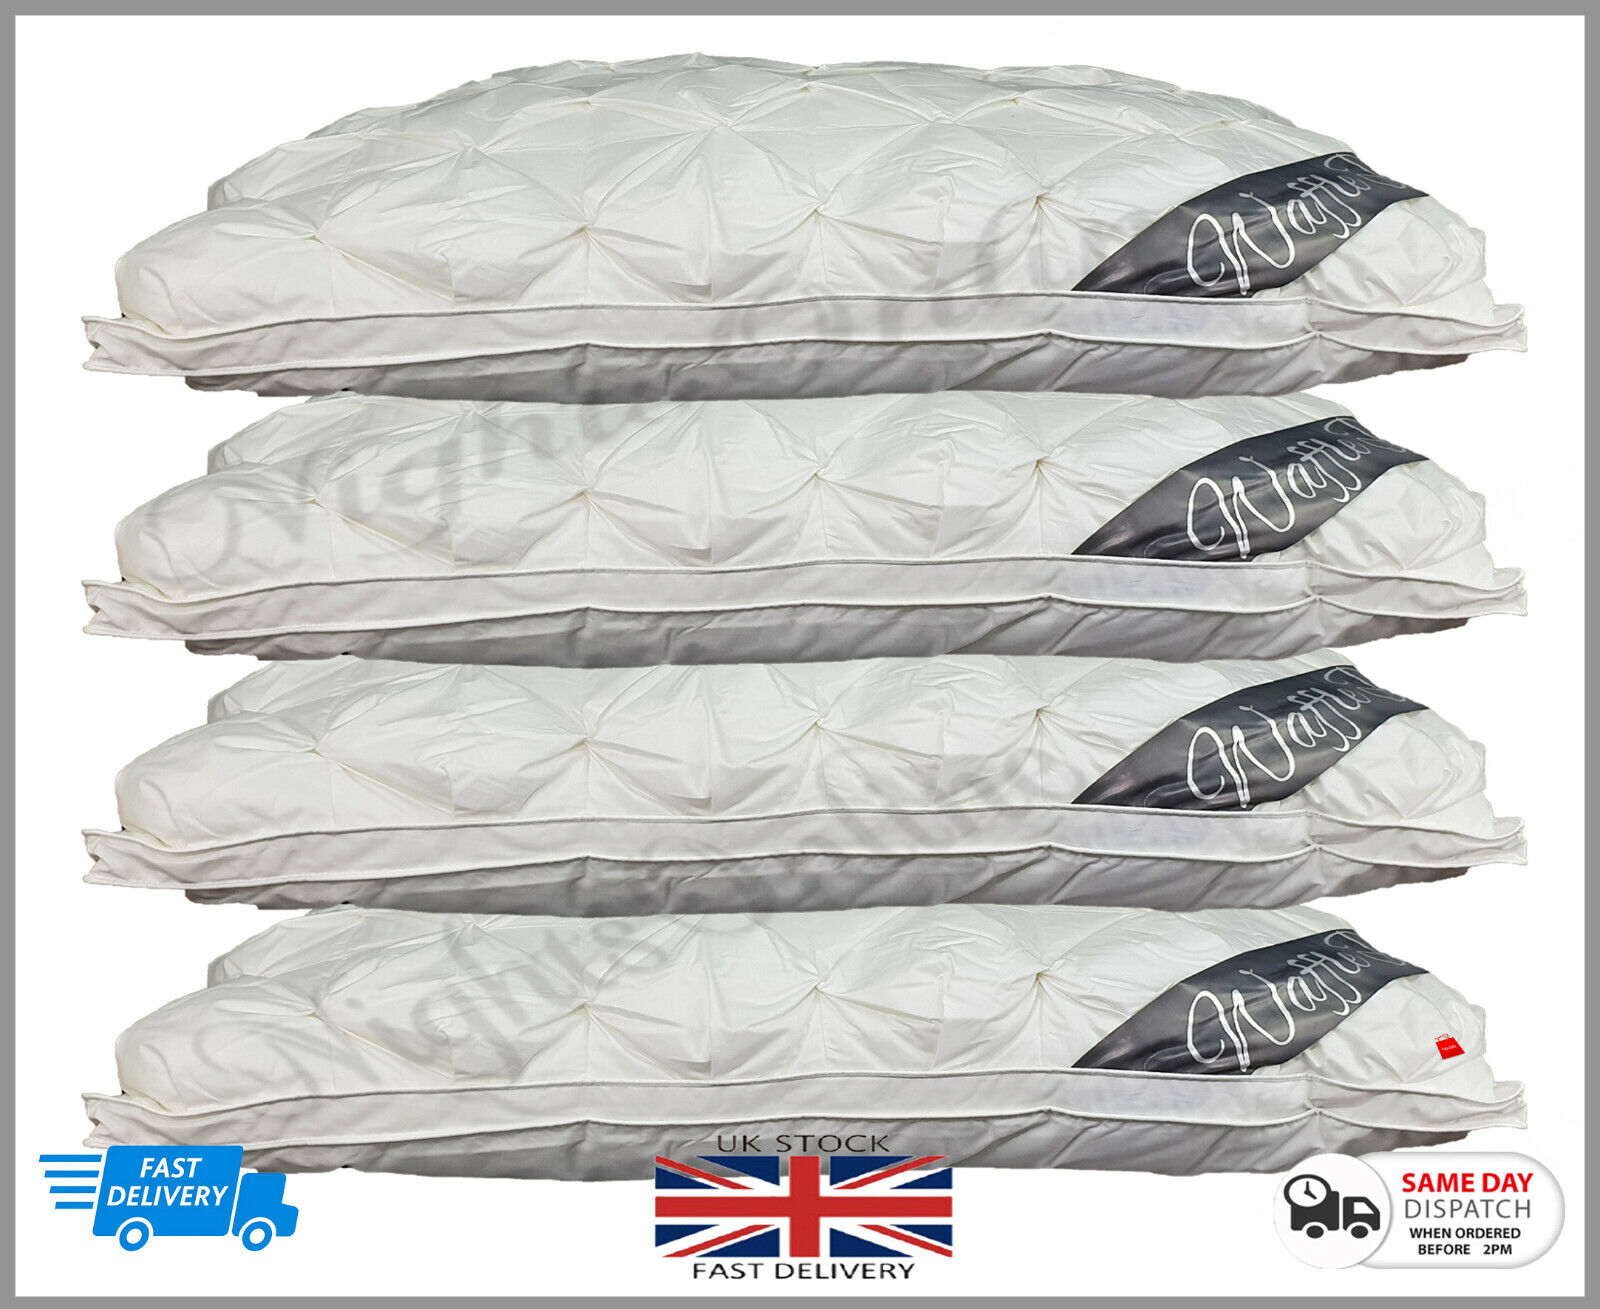 2 x Luxury Waffle Warm Pillow bed Hotel Quality Extra Soft Hollow Fibre Filling